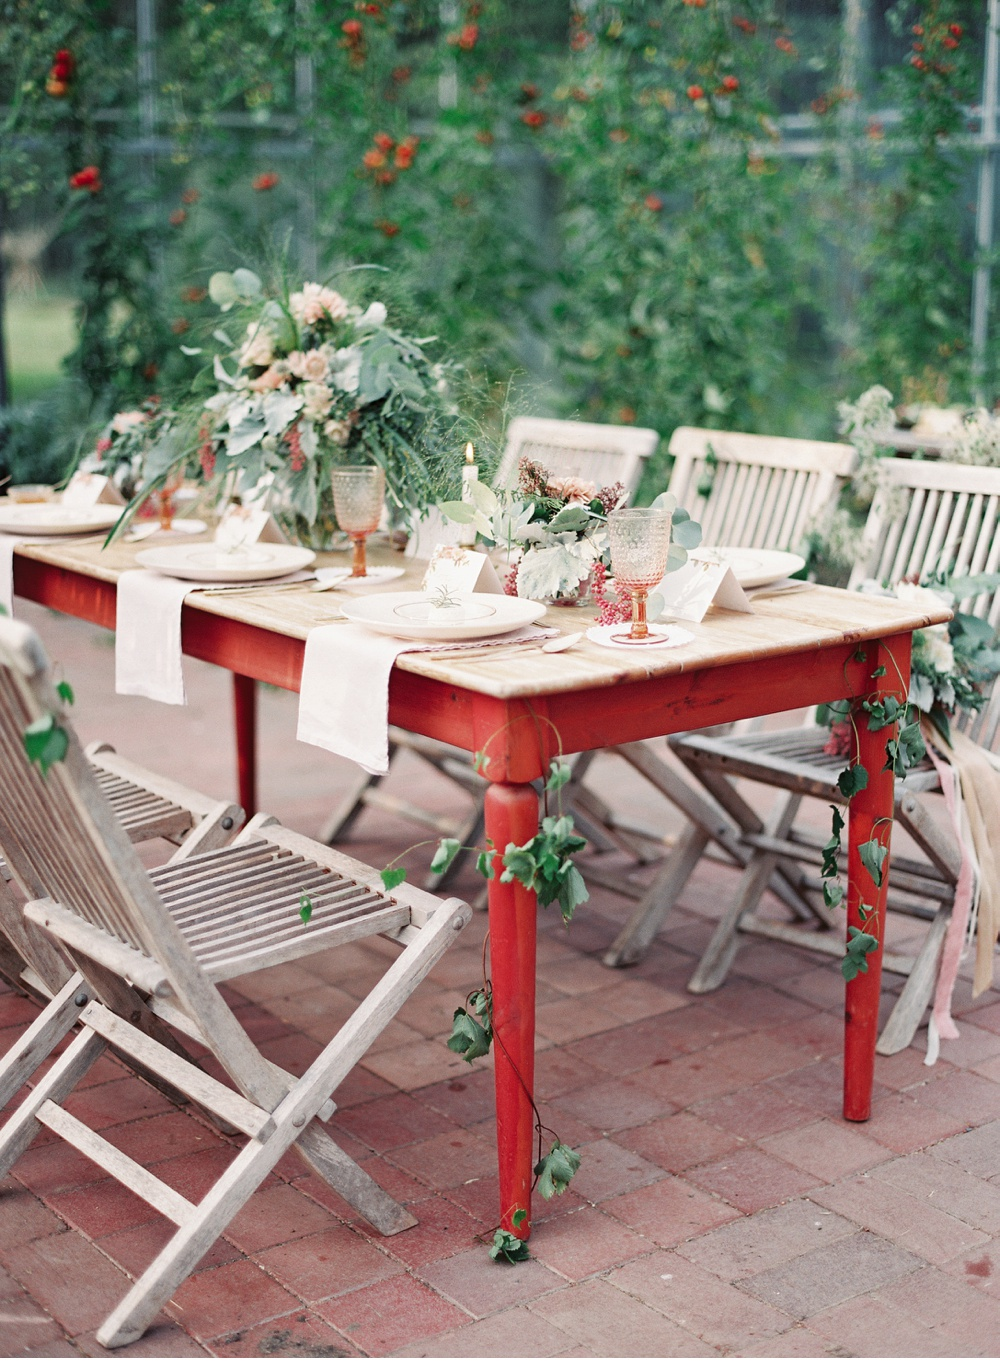 Greenhouse_wedding_inspiration©MadalinaSheldon_0024.jpg